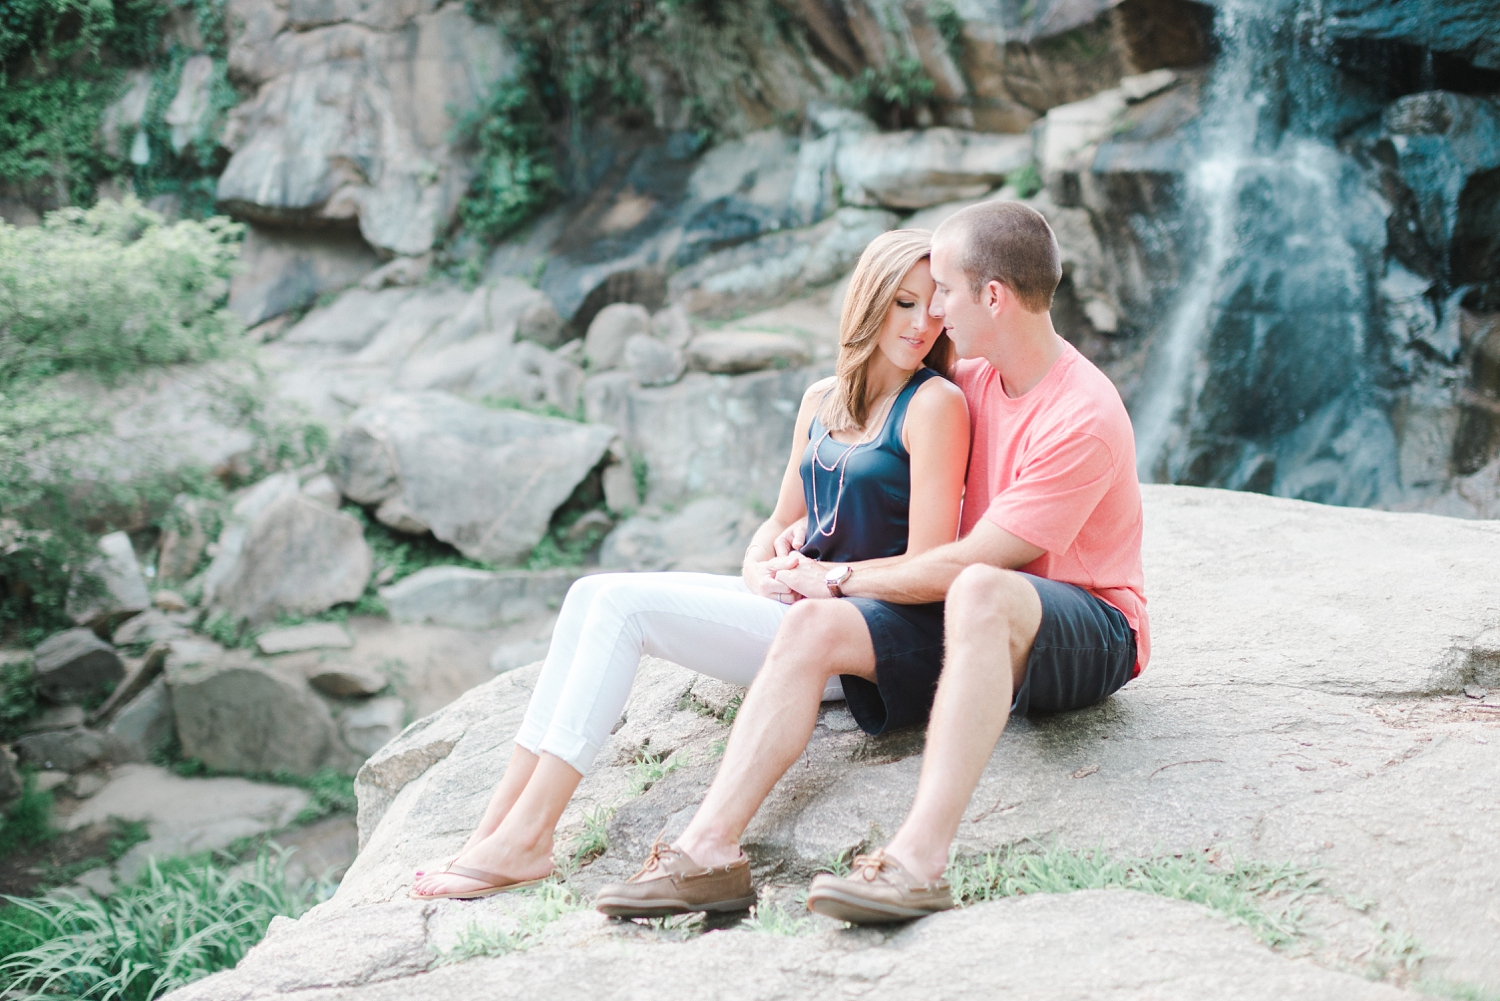 Maymon_Park_richmond_engagement_photography_0017.jpg